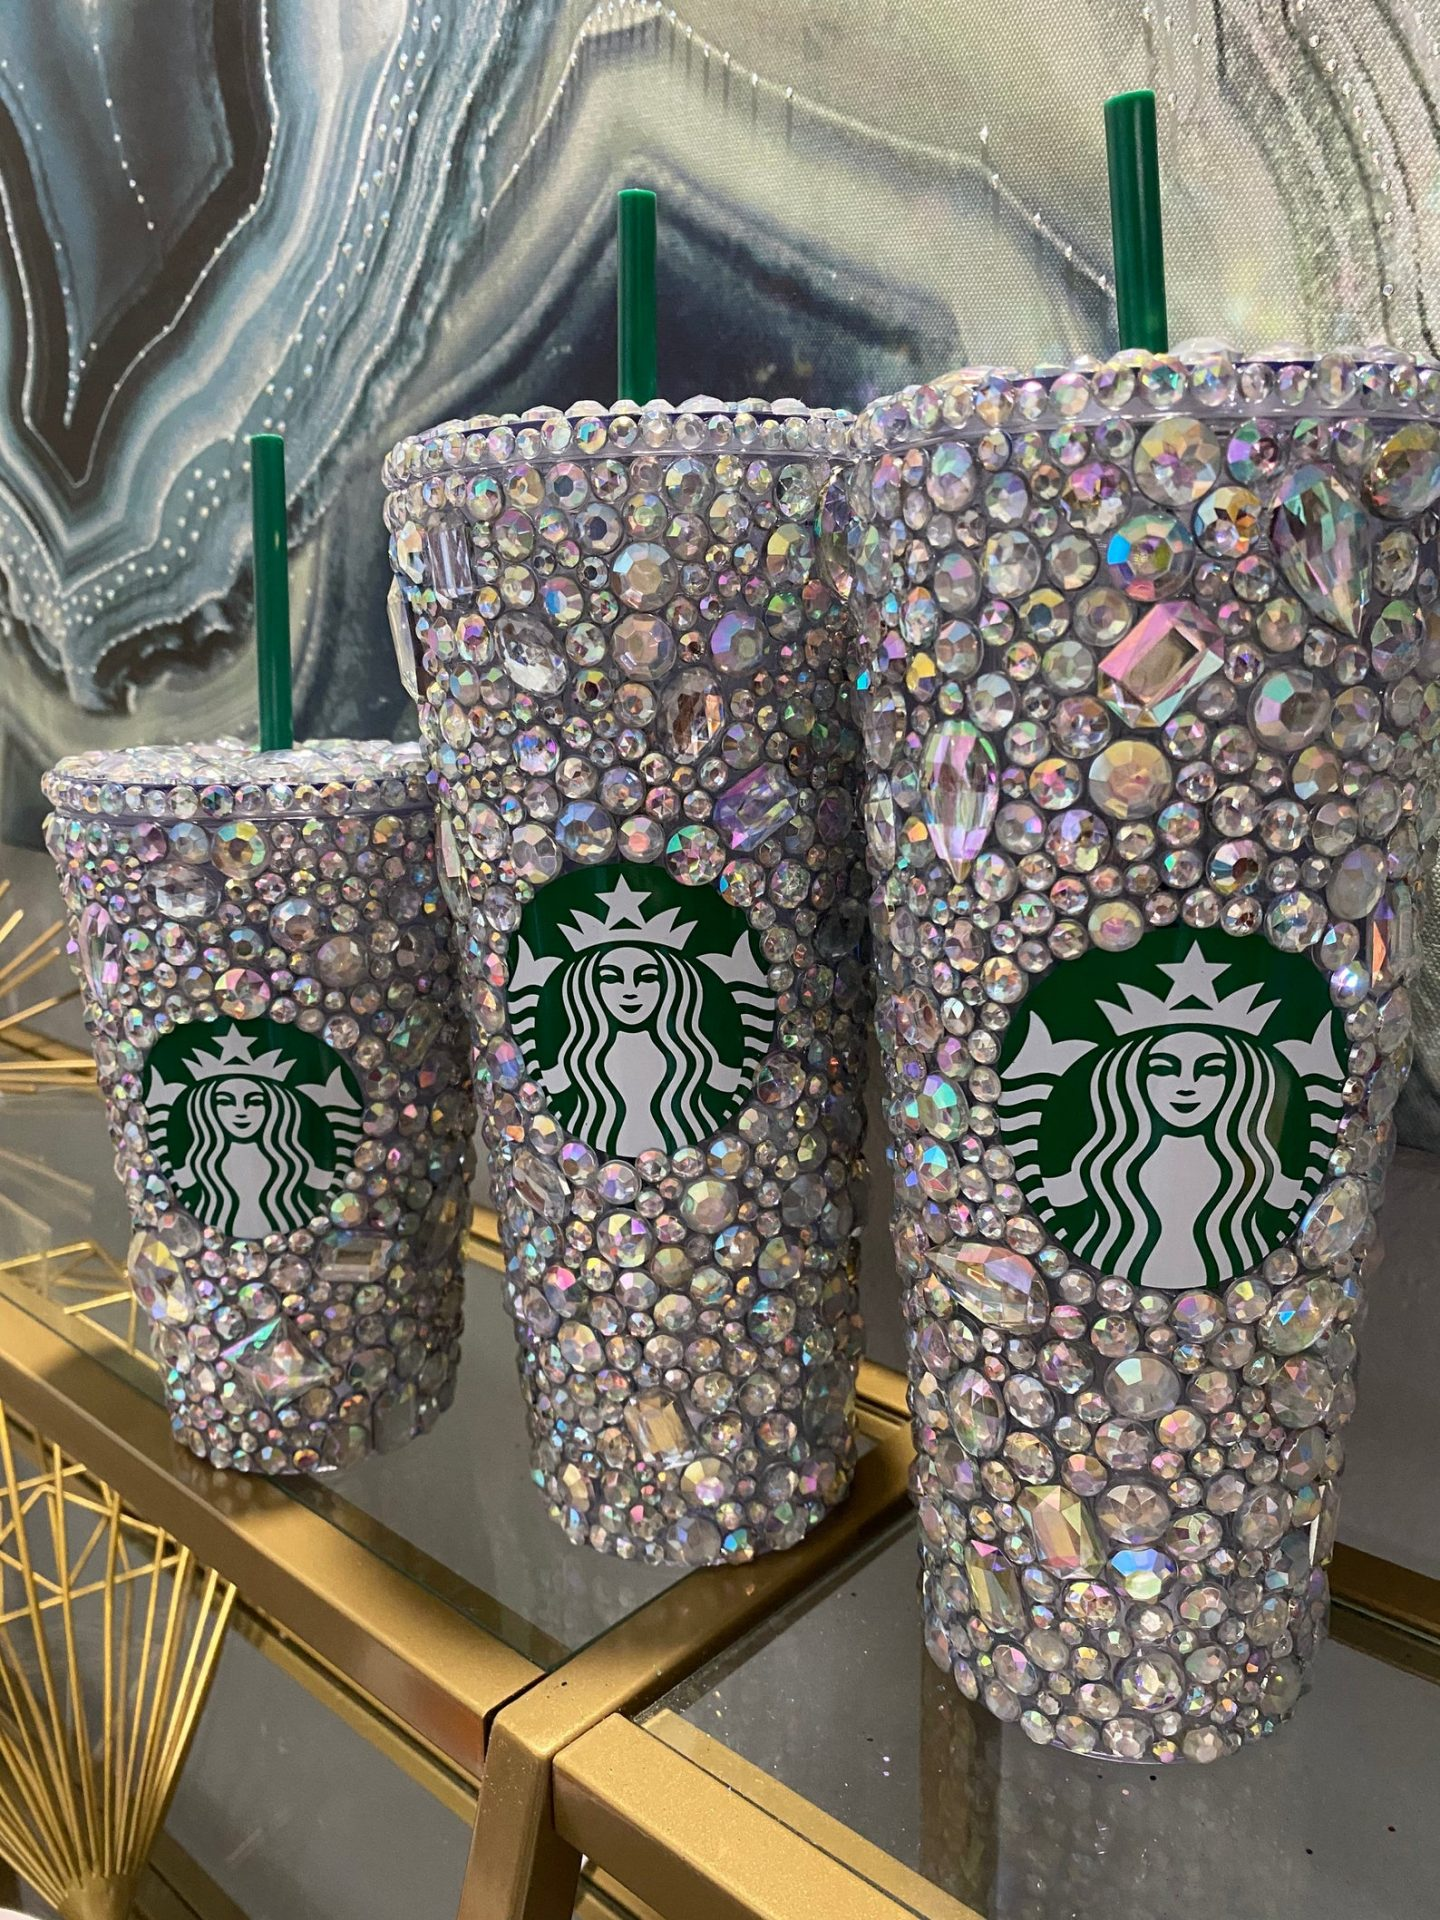 Cute customized Starbucks cup with rhinestones and bling